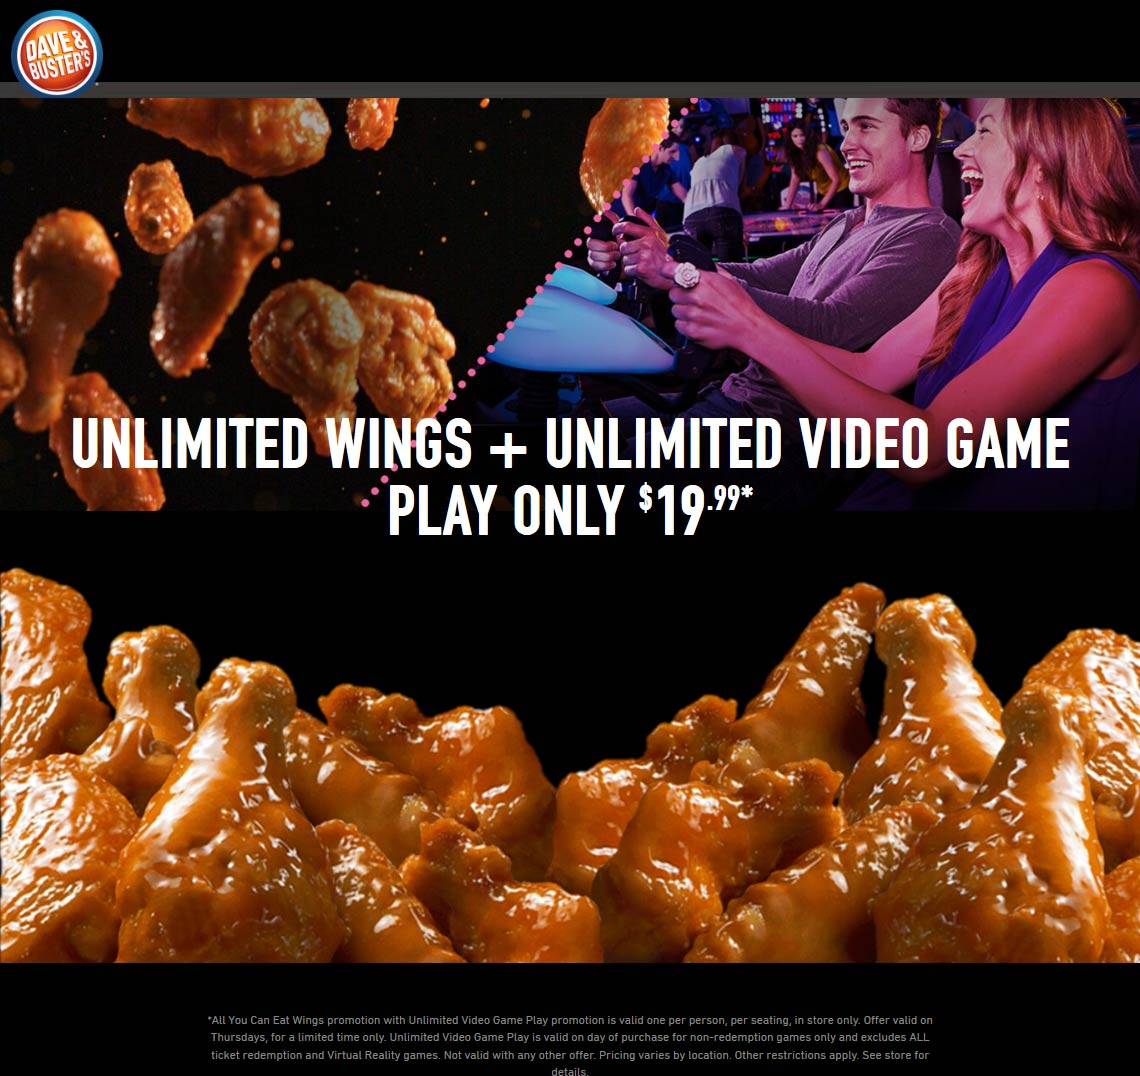 Dave & Busters Coupon February 2020 Bottomless wings $ games = $20 Thursday at Dave & Busters restaurants